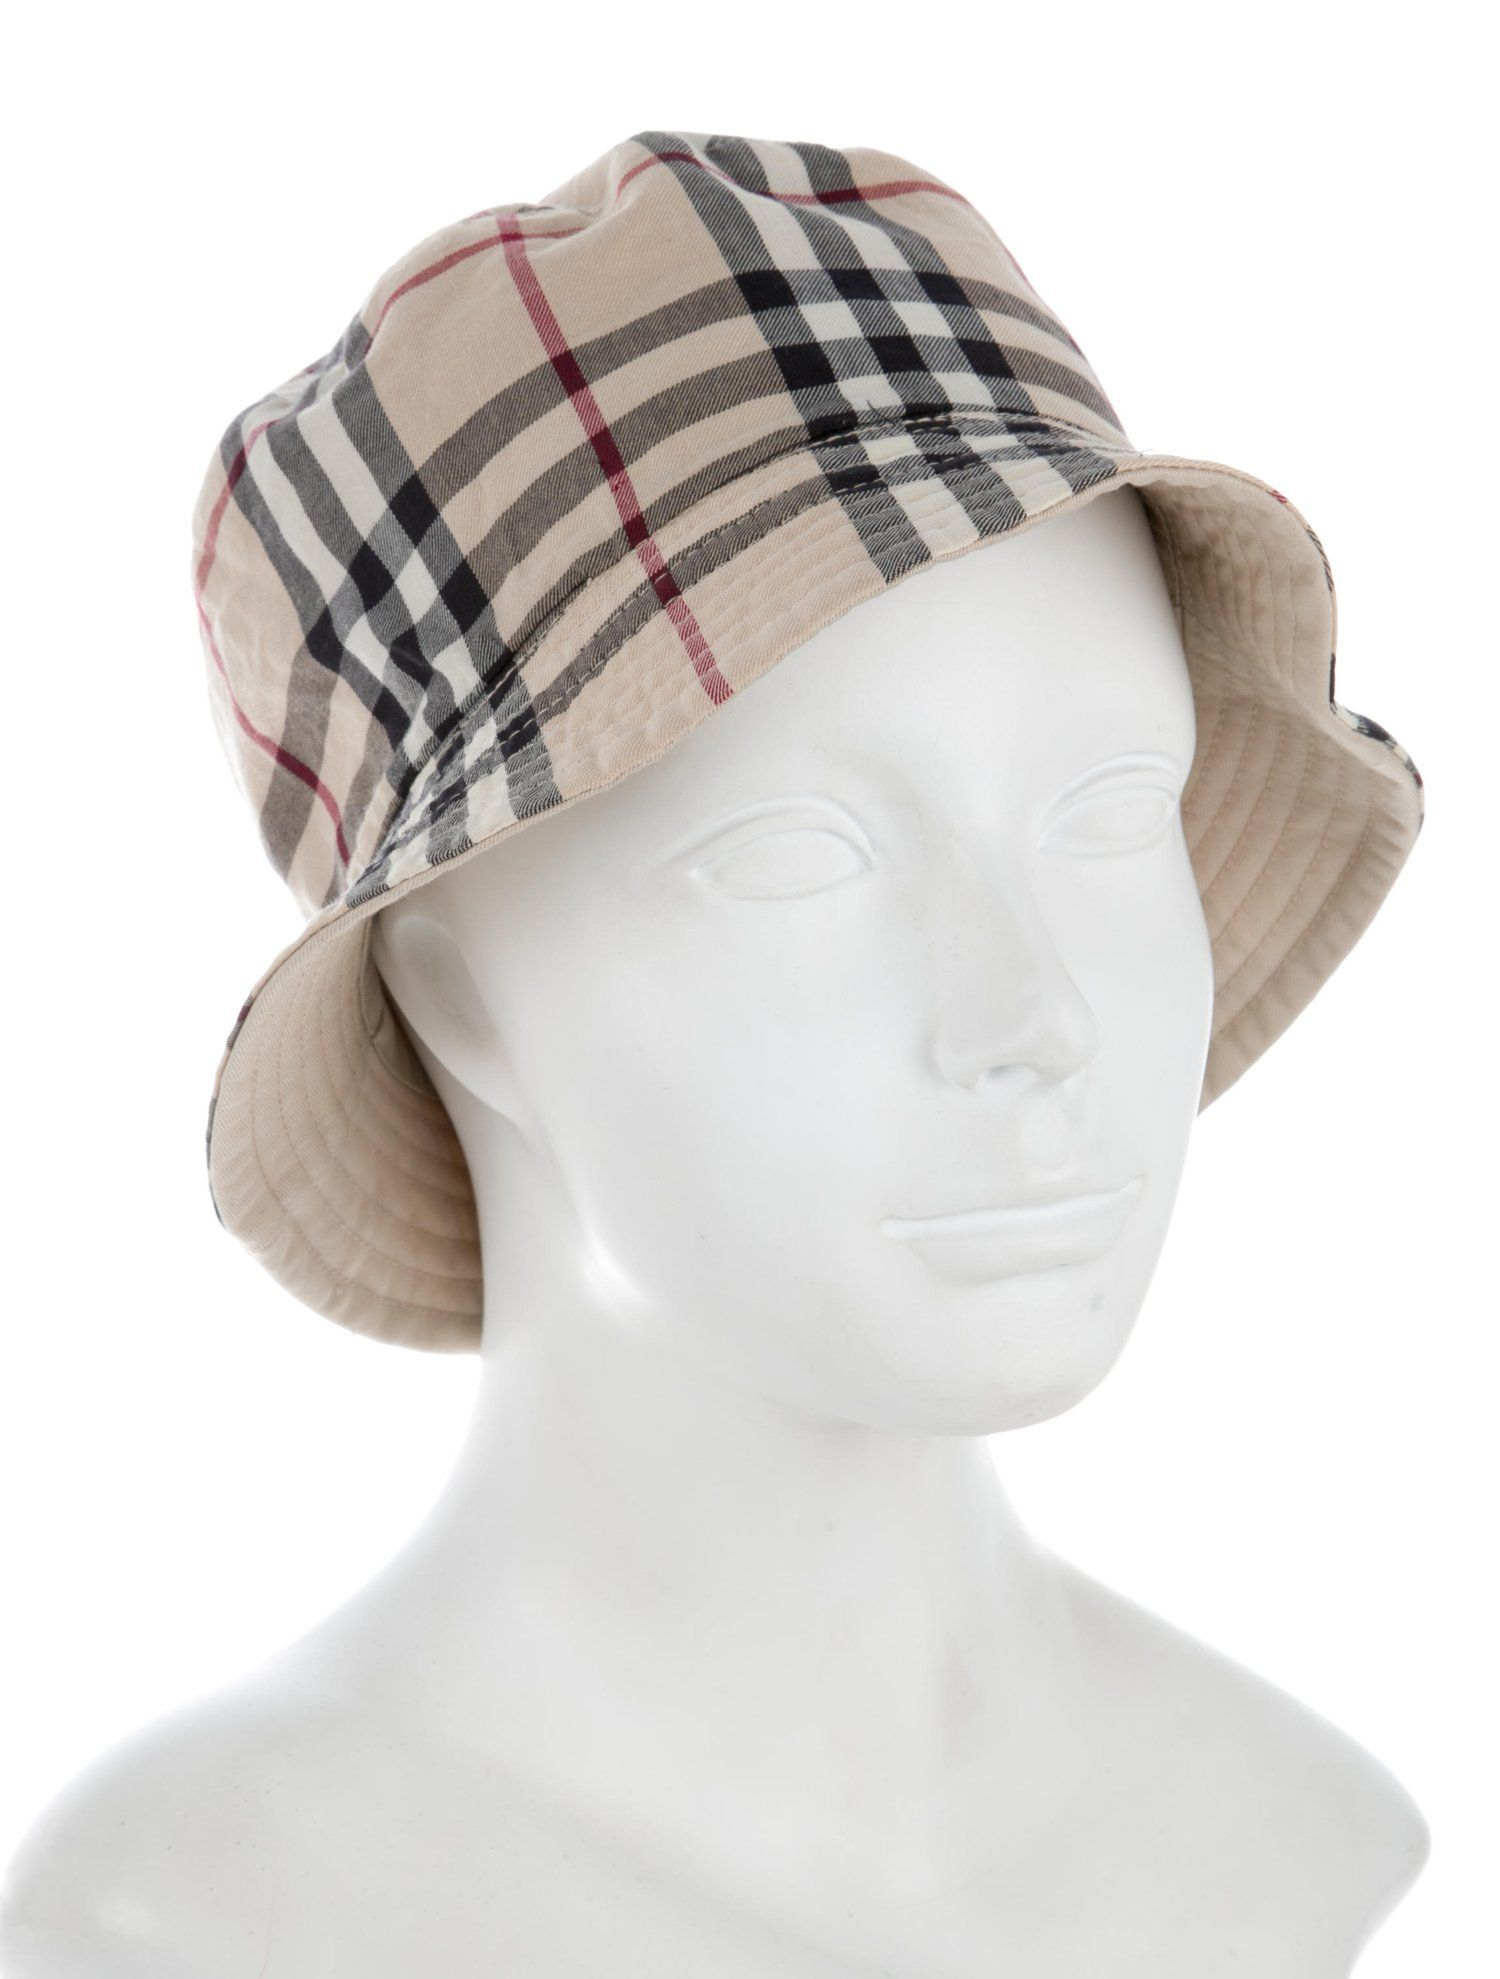 e322a2467 Reversible Bucket Hat | Vintage Styles Dresses in 2019 | Burberry ...